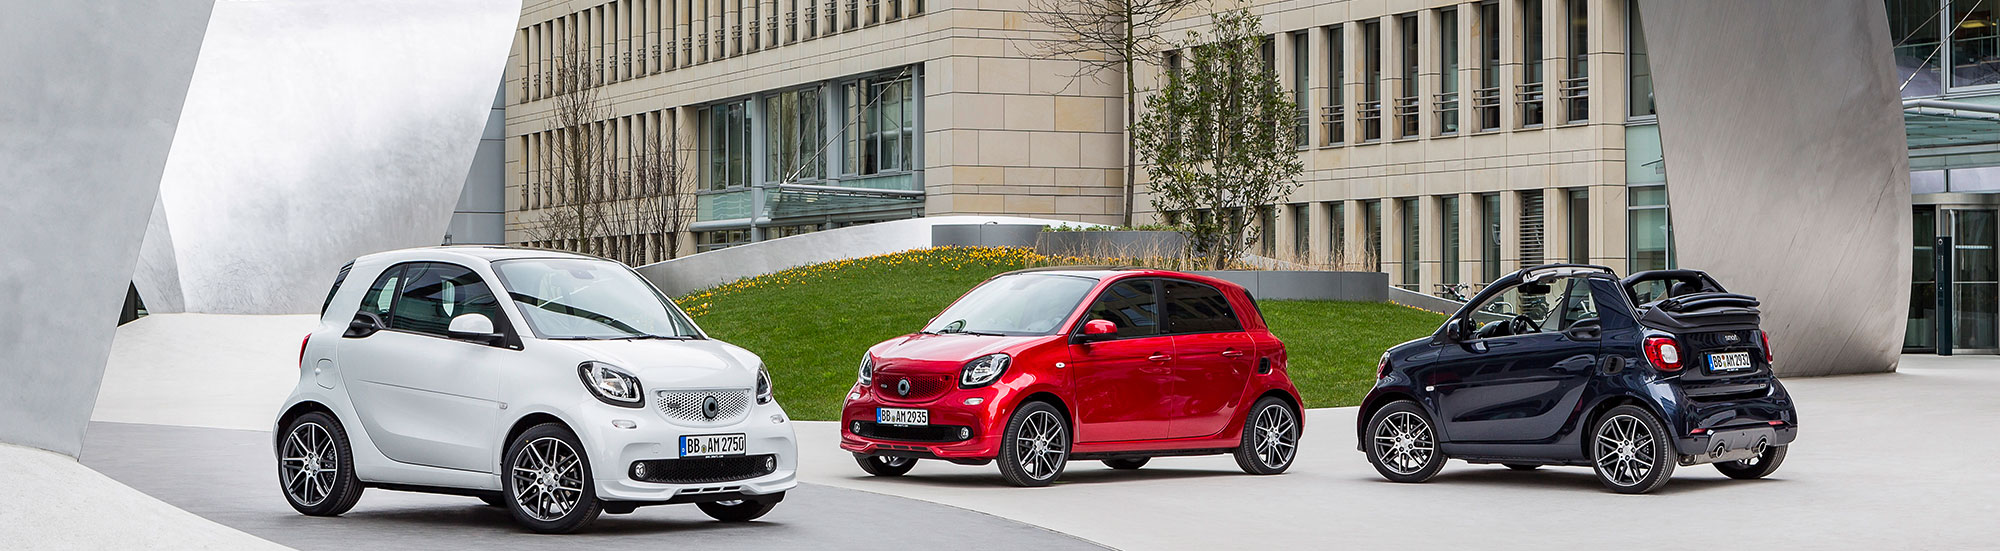 smart usate fortwo e forfour